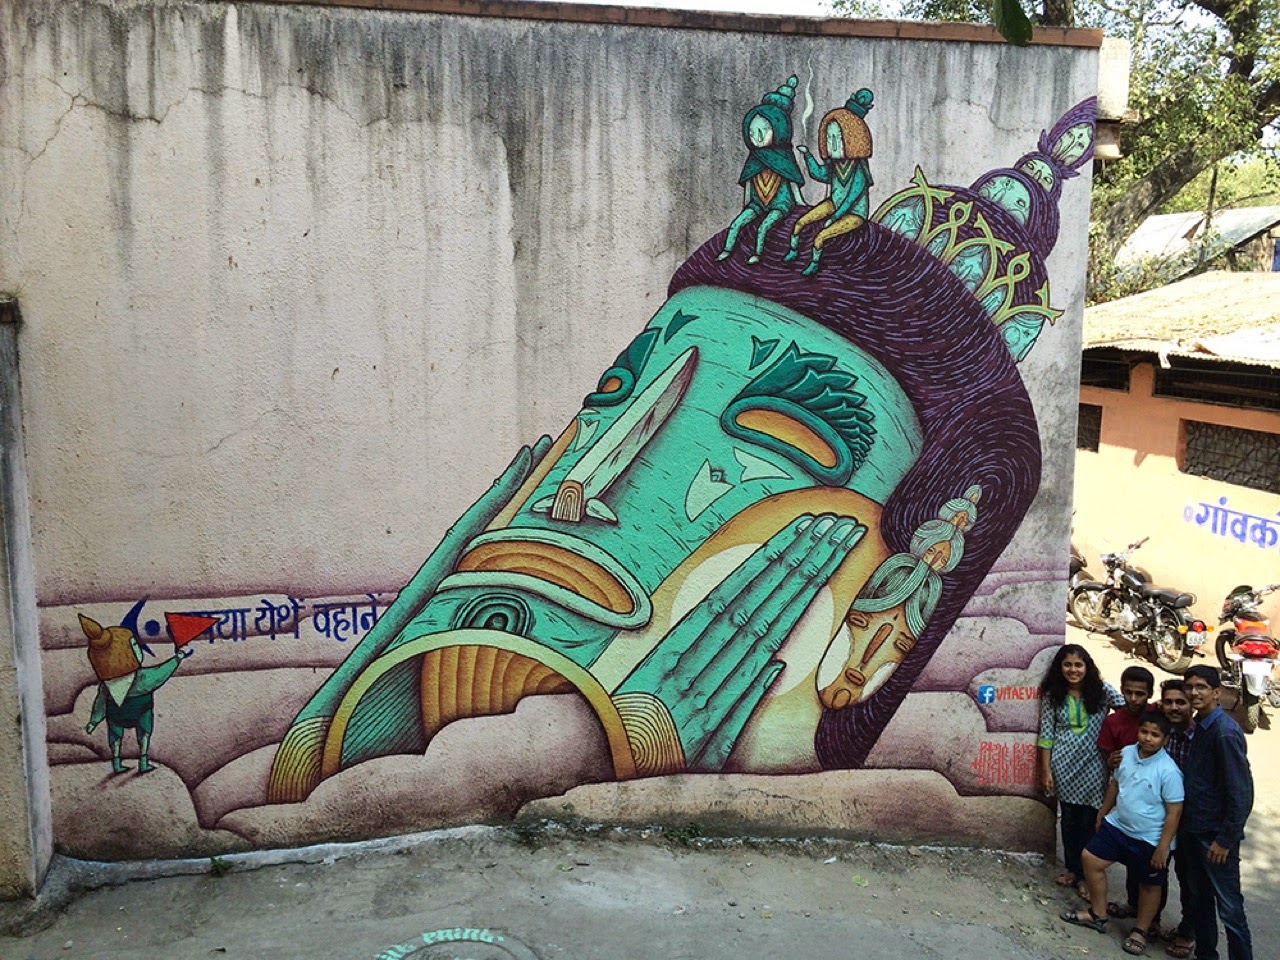 While we discovered some of their previous pieces in Goa a few days ago, VitaeViazi are still traveling through India where they just dropped a series of new artworks.